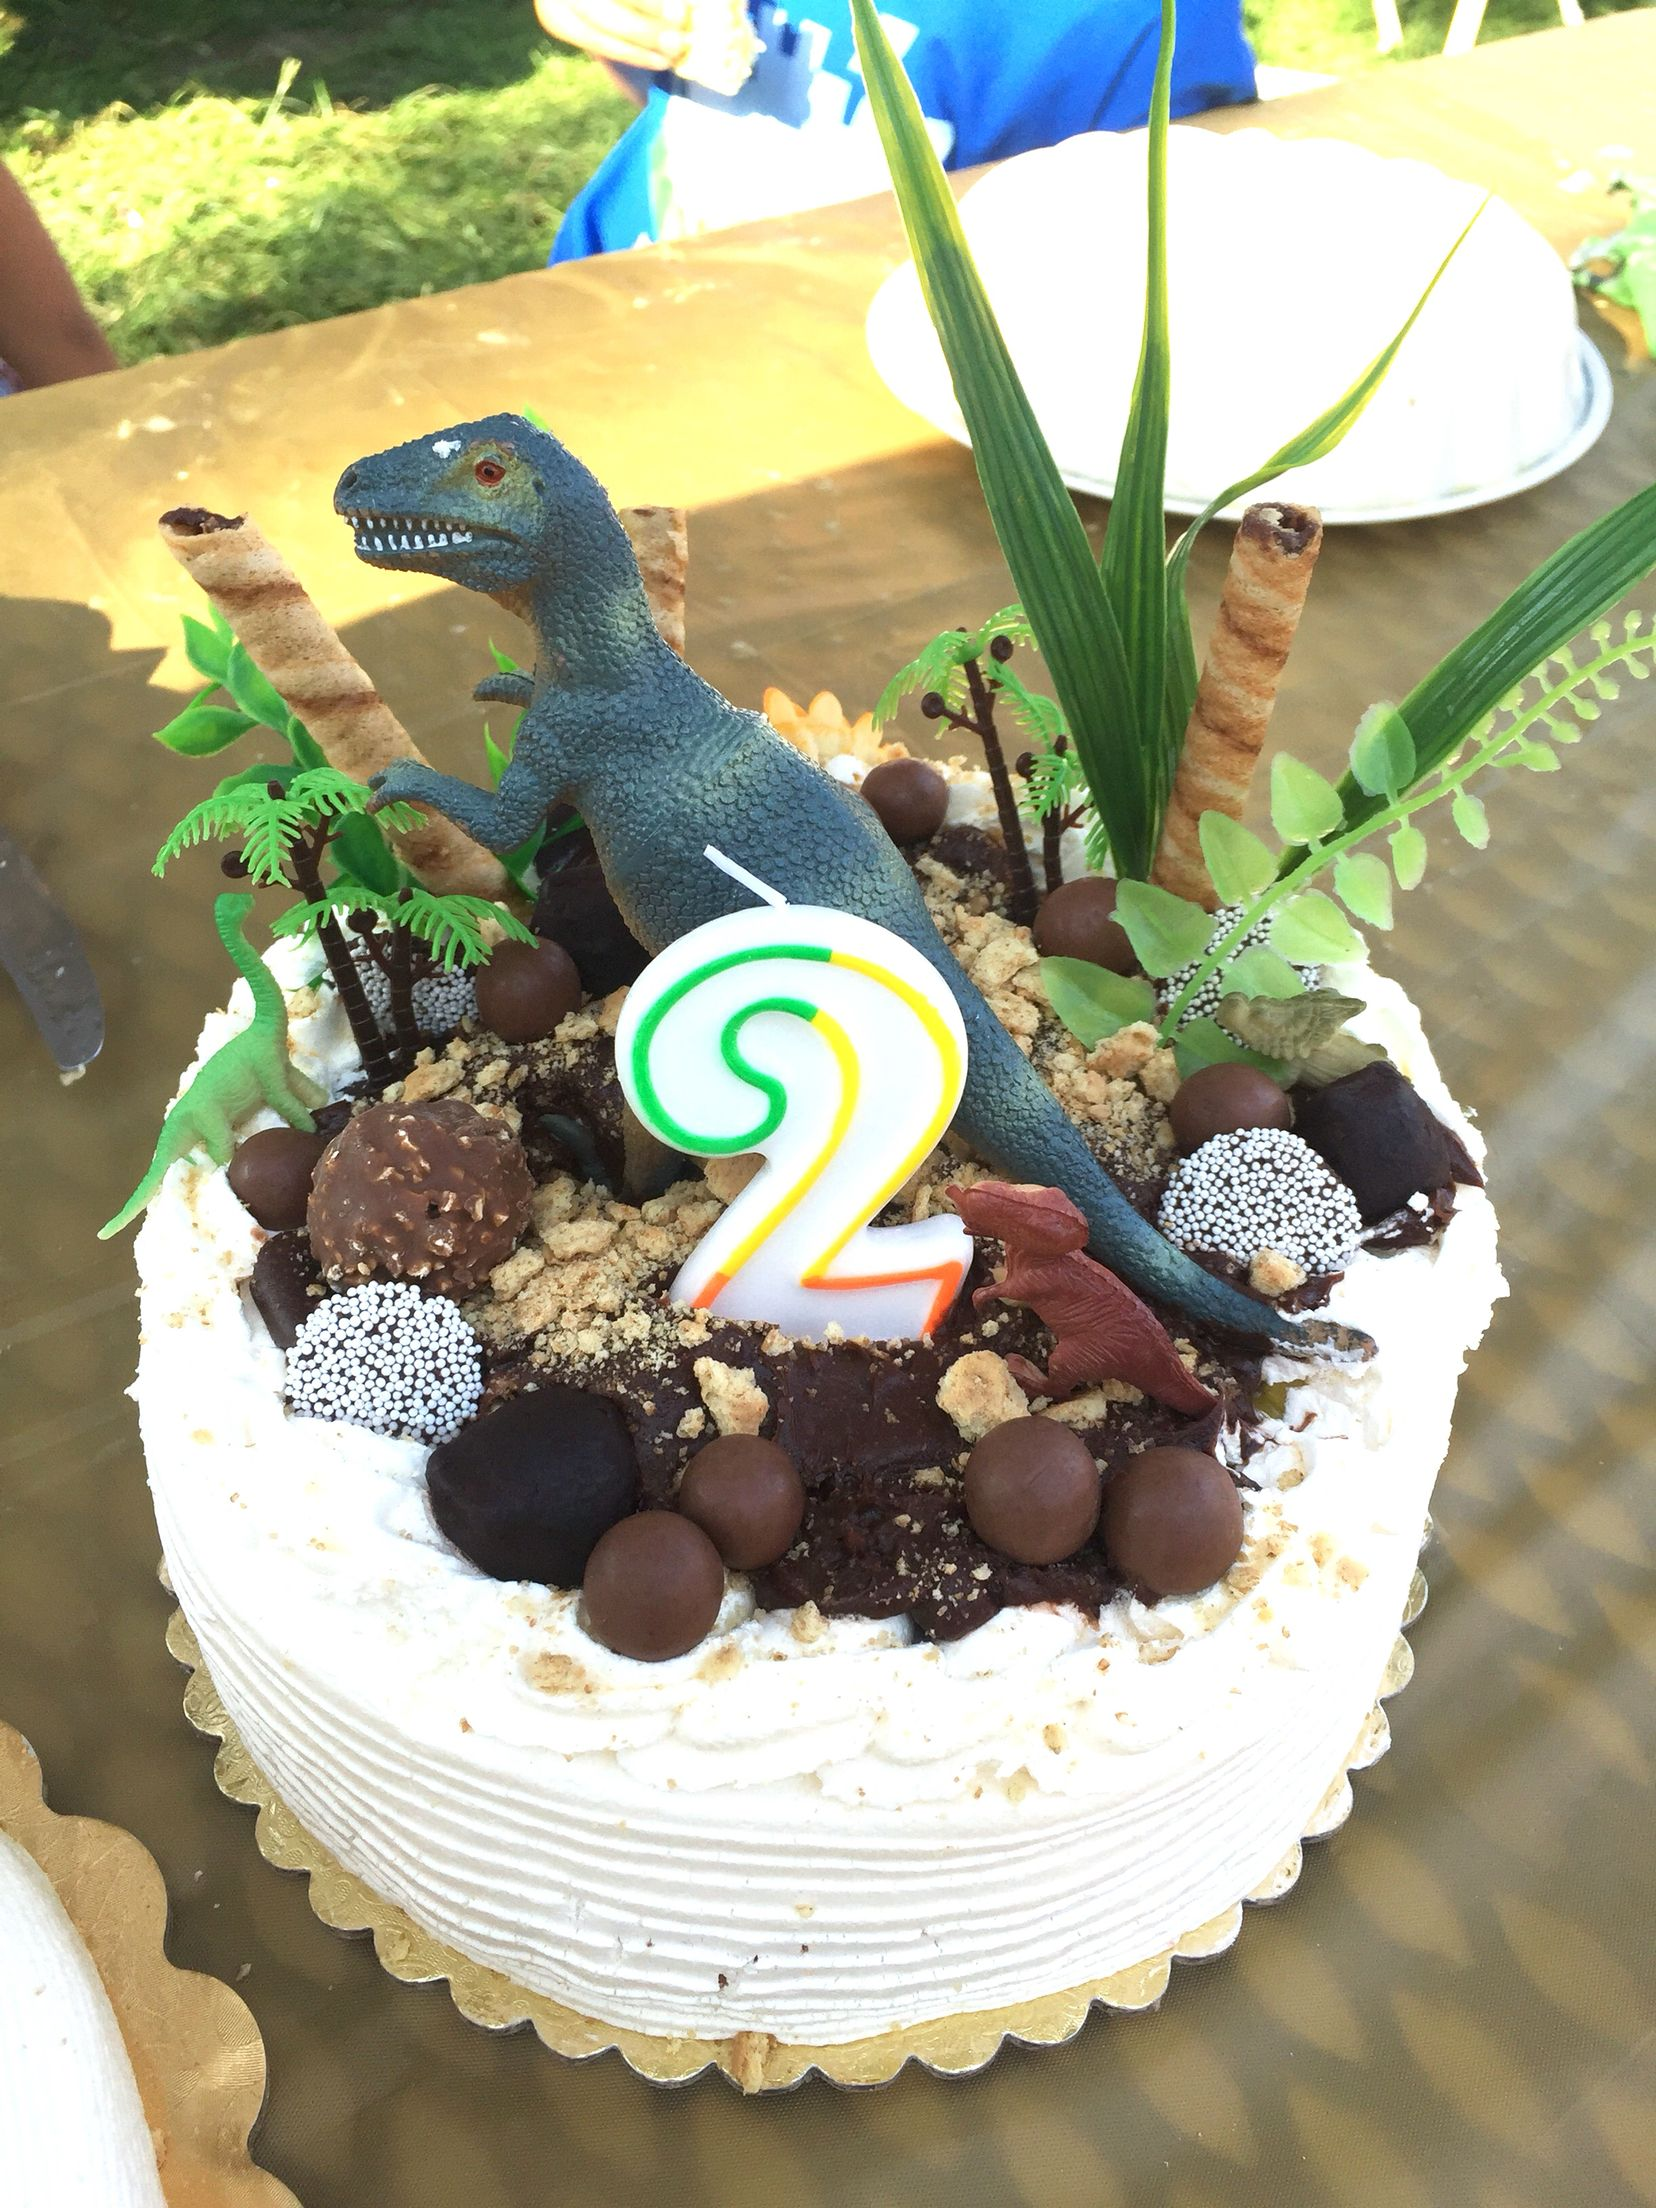 Dinosaur Cake Accessories : Easy DIY dinosaur cake decorations using dollar store ...